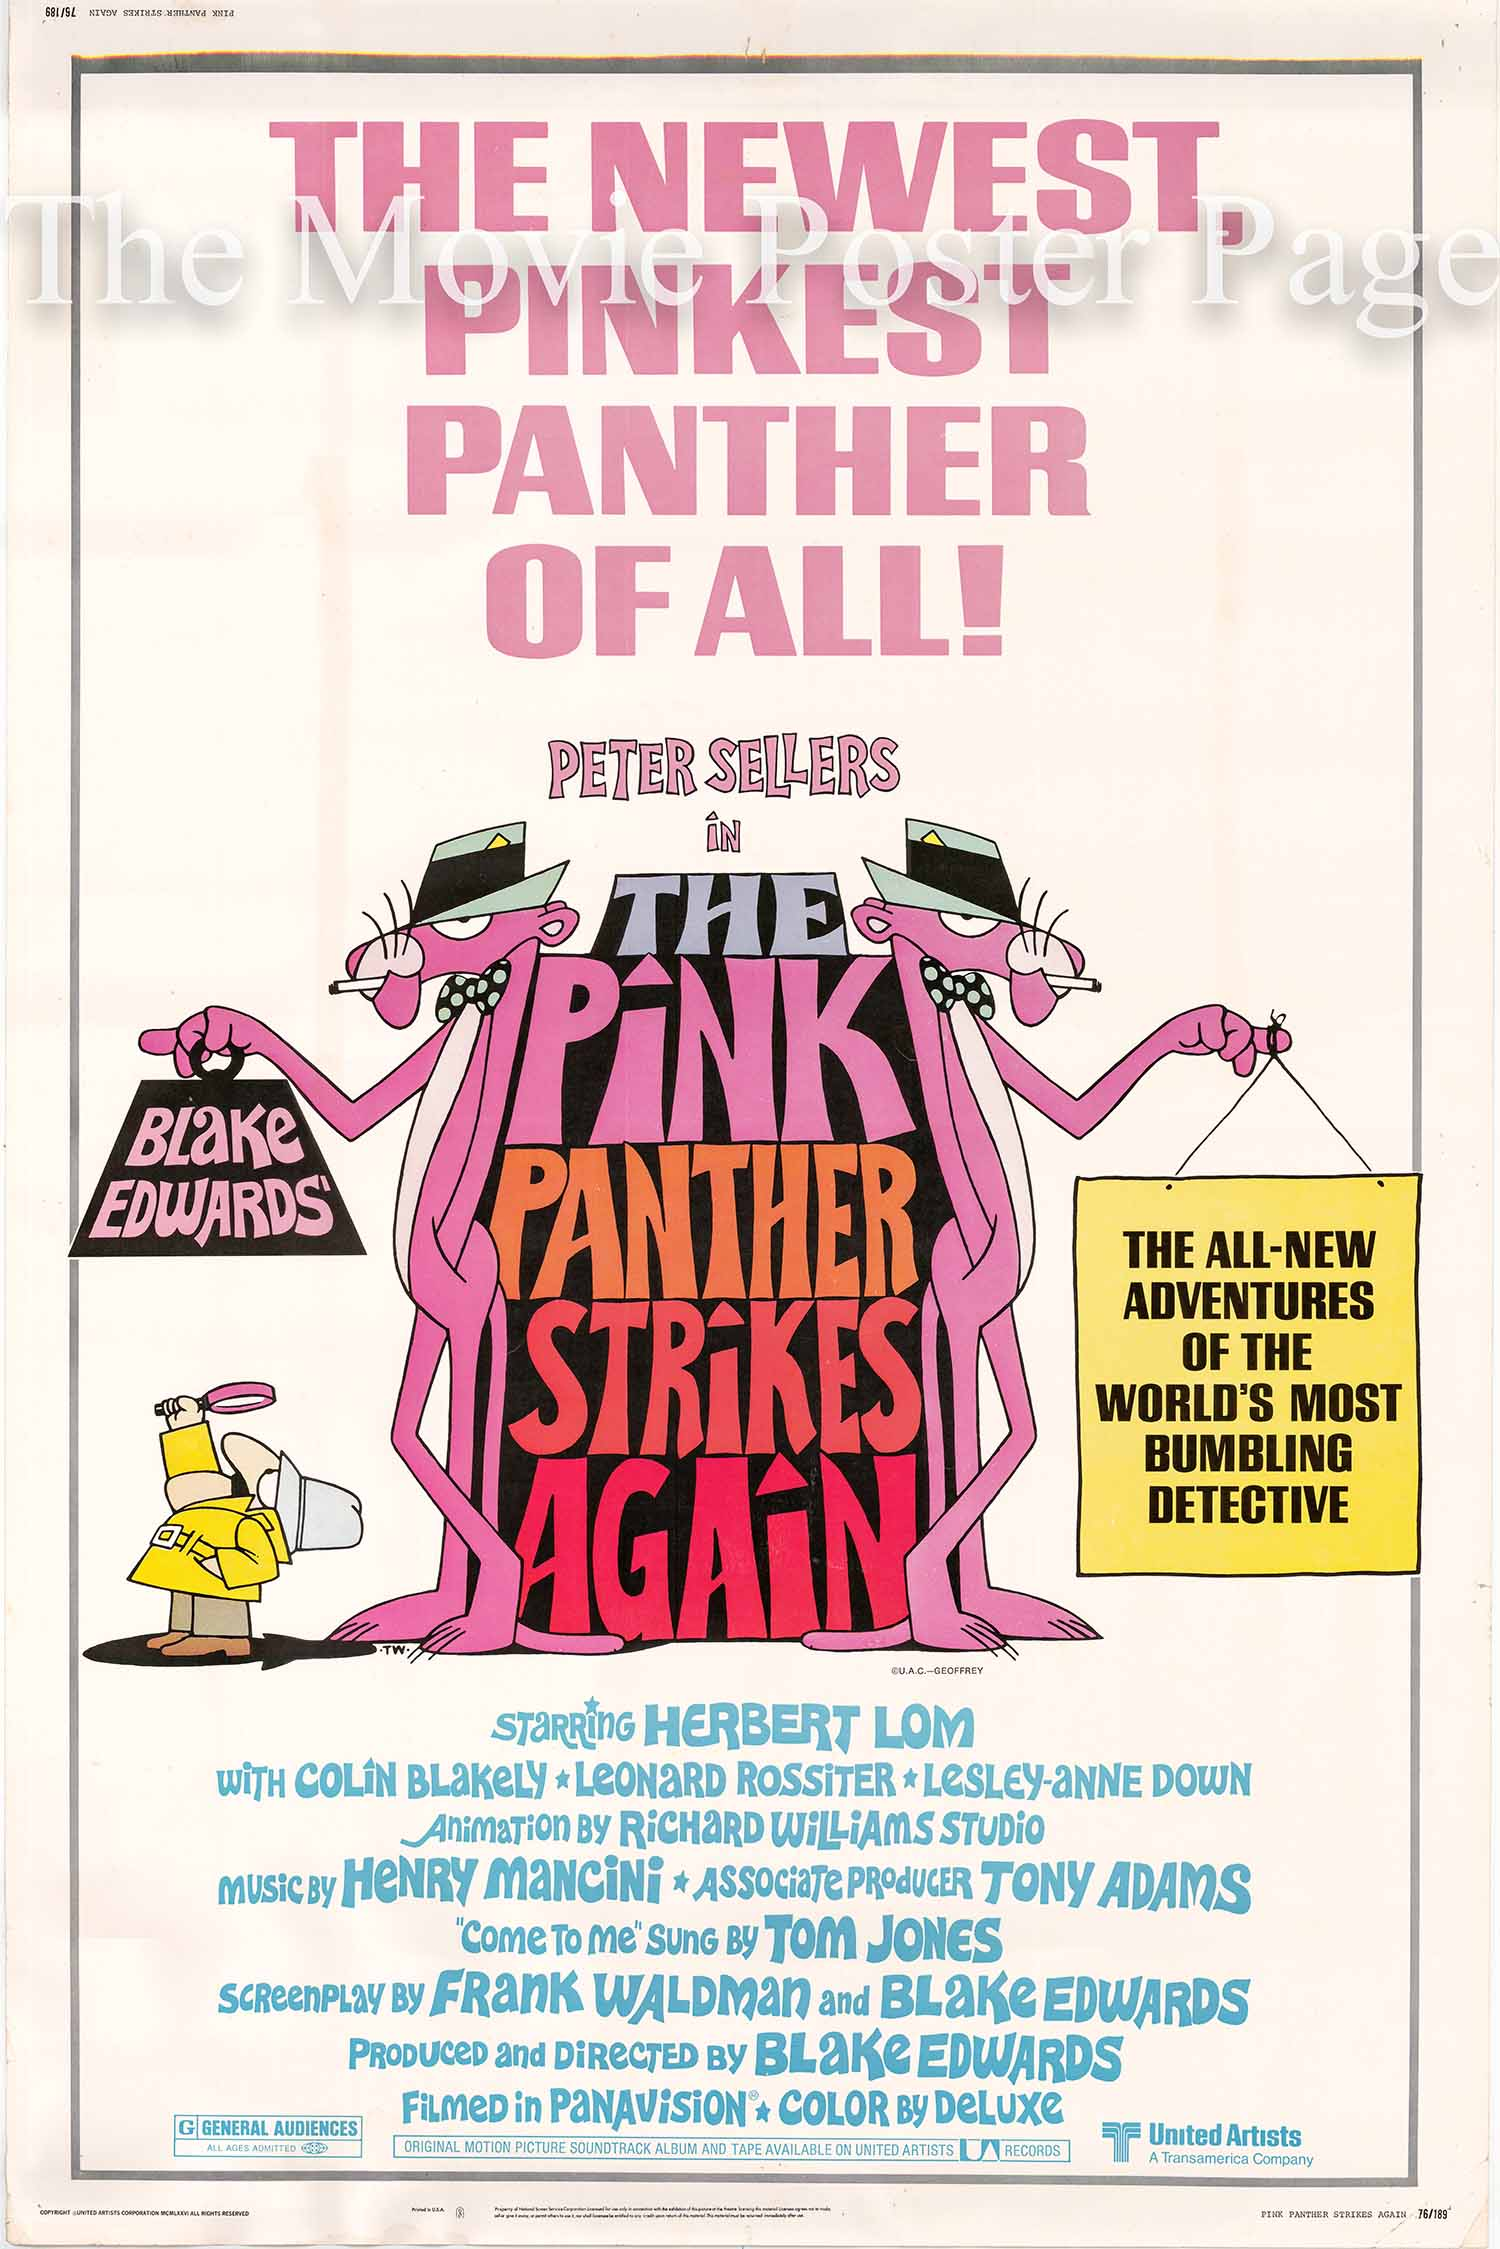 Pictured is a US 40x60 promotional poster for the 1976 Blake Edwards film The Pink Panther Strikes Again starring Peter Sellers.